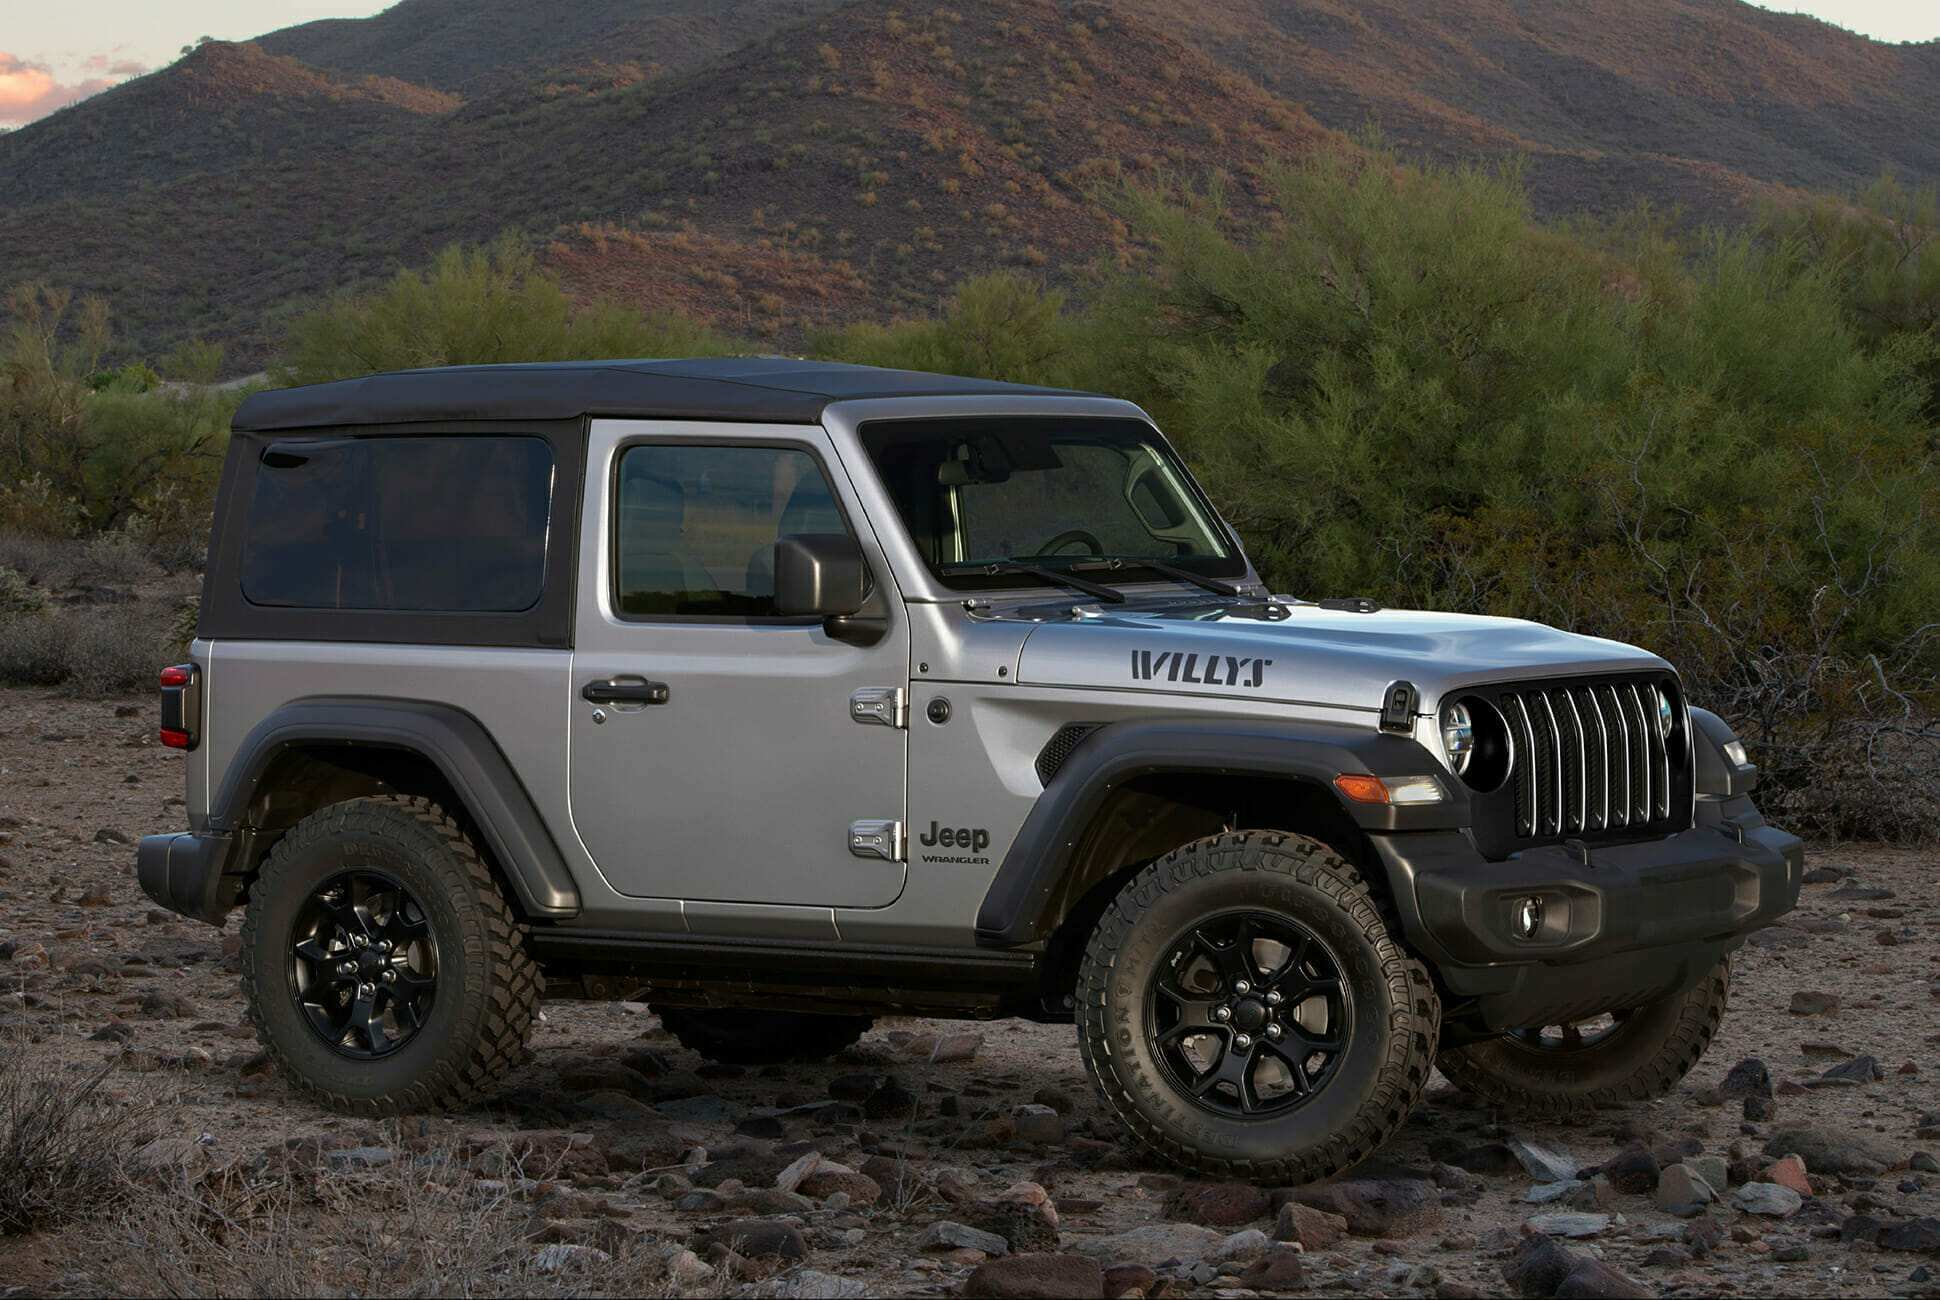 56 All New Jeep Jl 2020 Redesign And Review